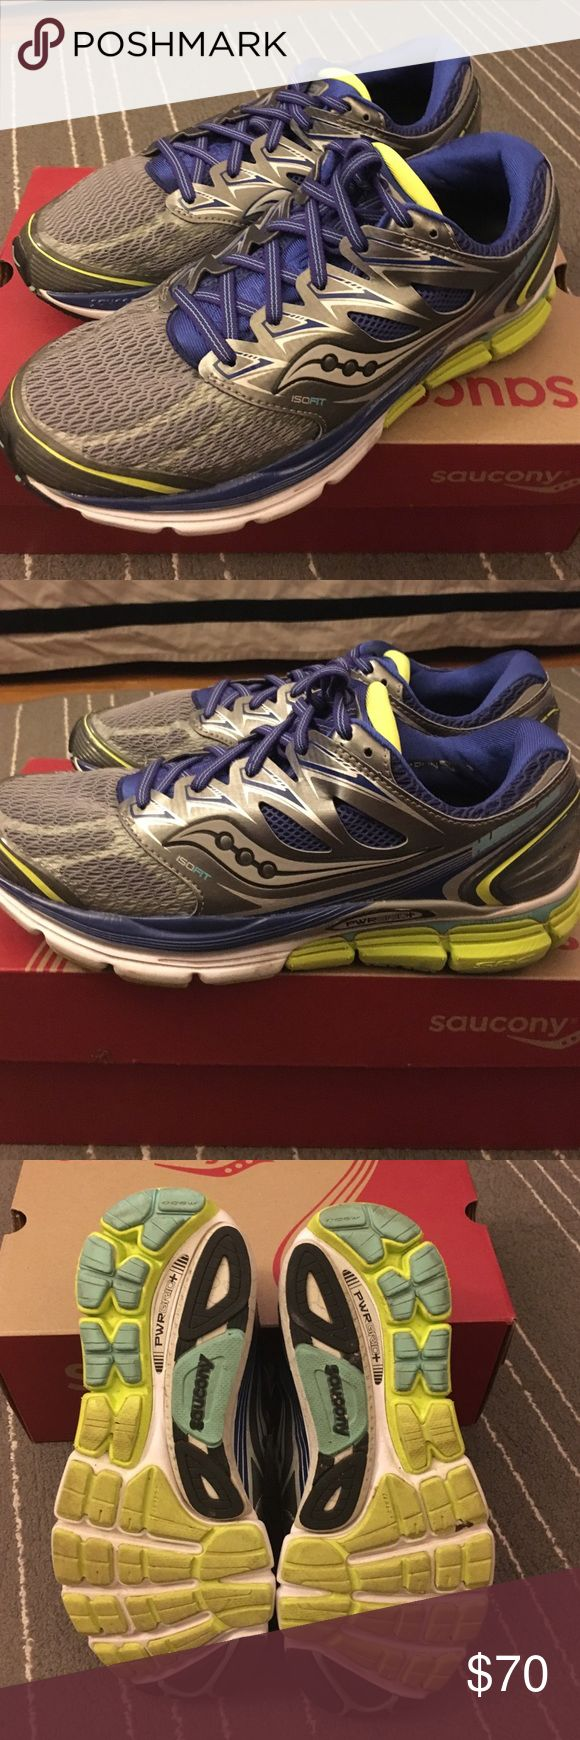 9ff04a9a5f5 Buy saucony stability running shoes reviews   Up to OFF65% Discounted